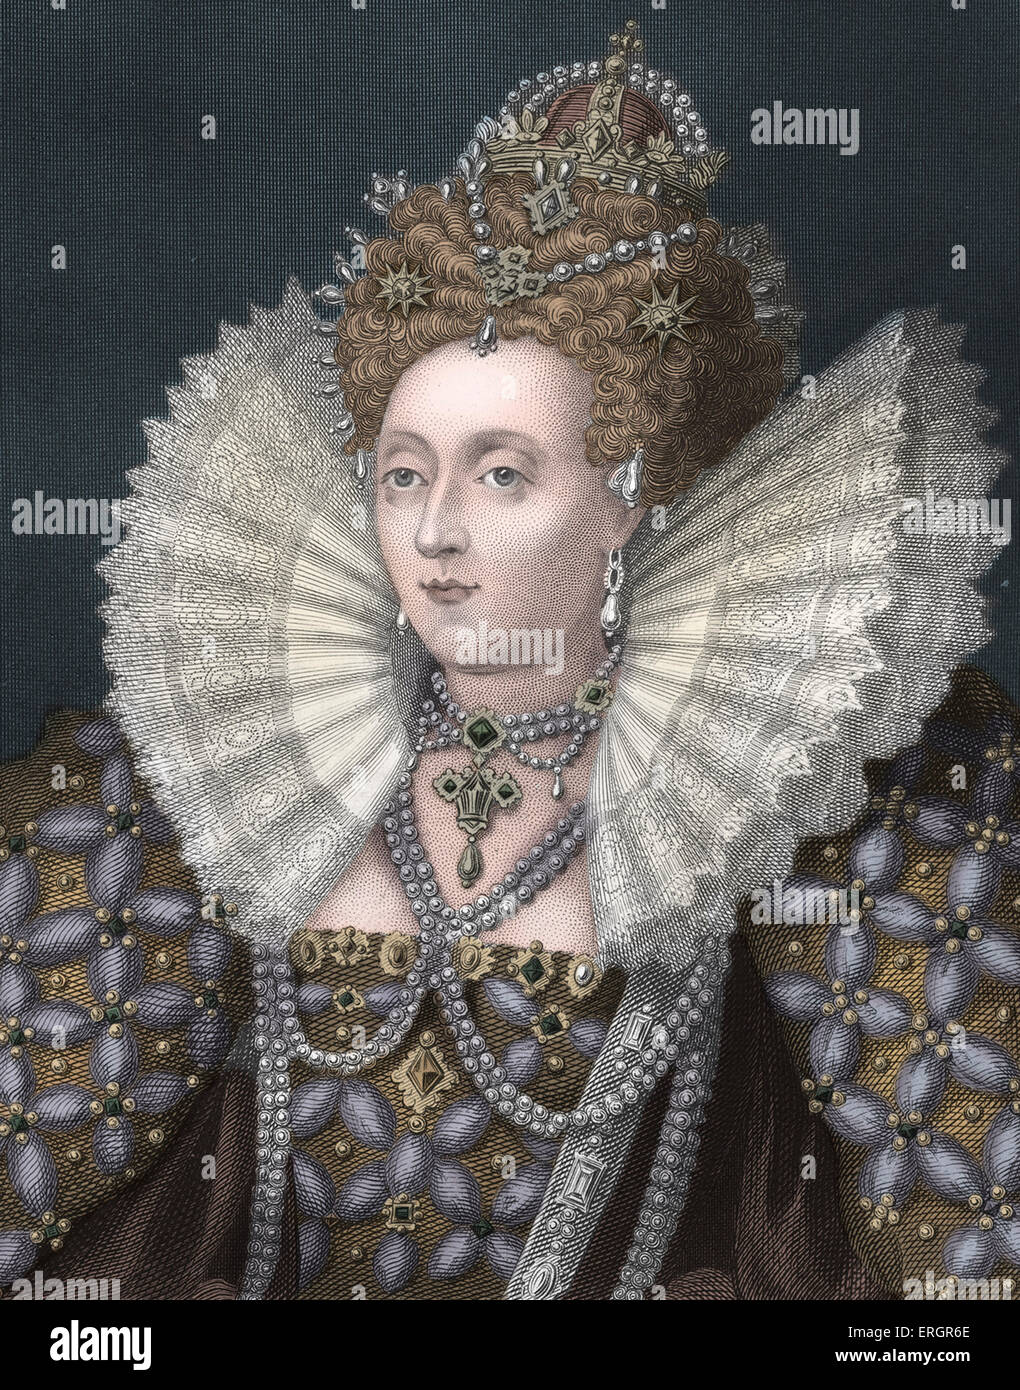 Elizabeth I, portrait. Queen of England from 1558 until her death. 7 September 1533 – 24 March 1603. - Stock Image